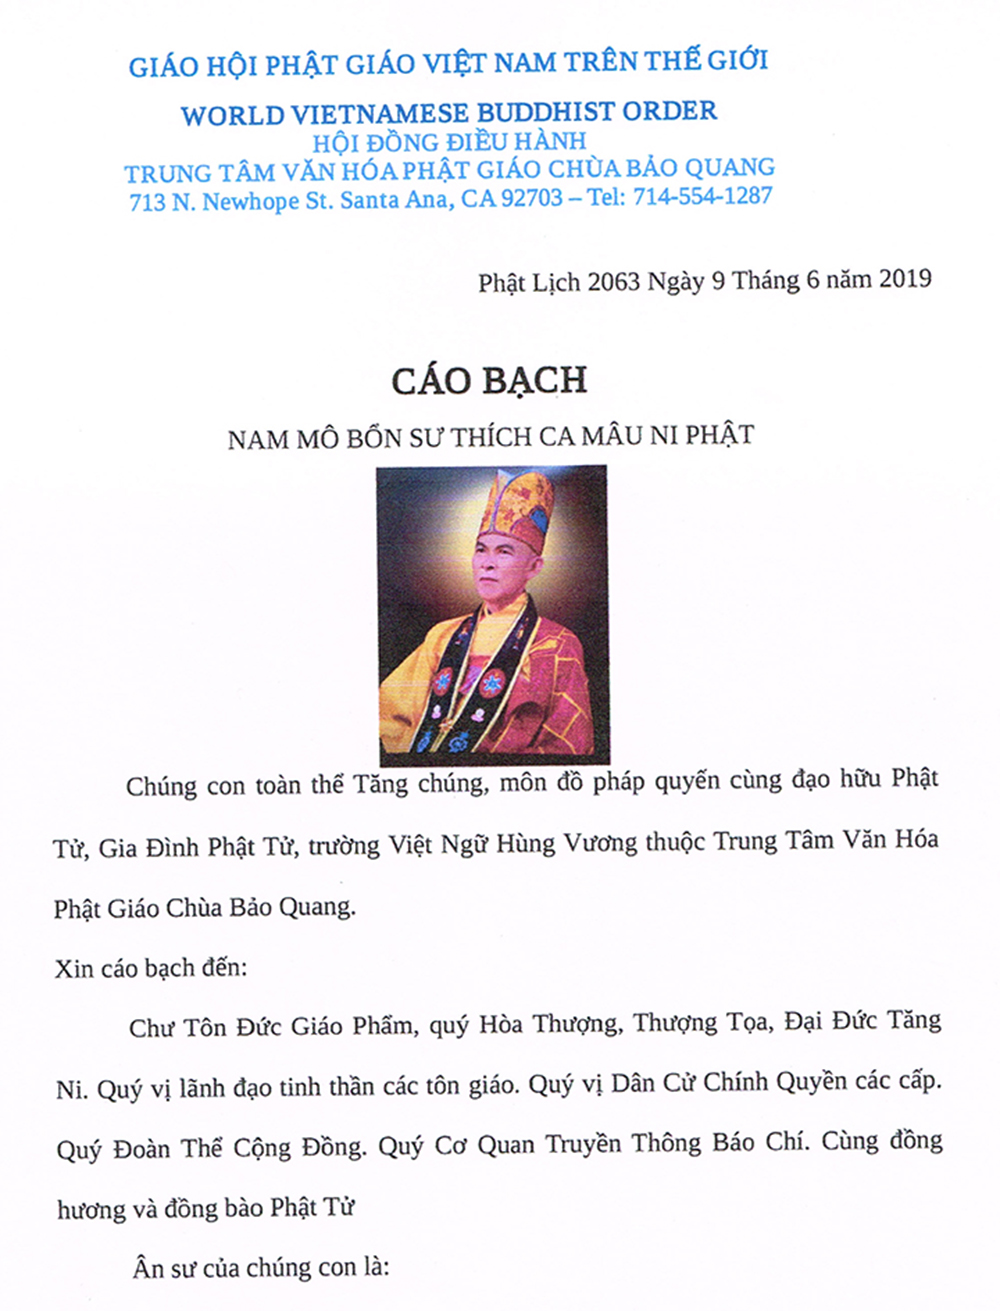 cao bach tang le-ht quang thanh 1